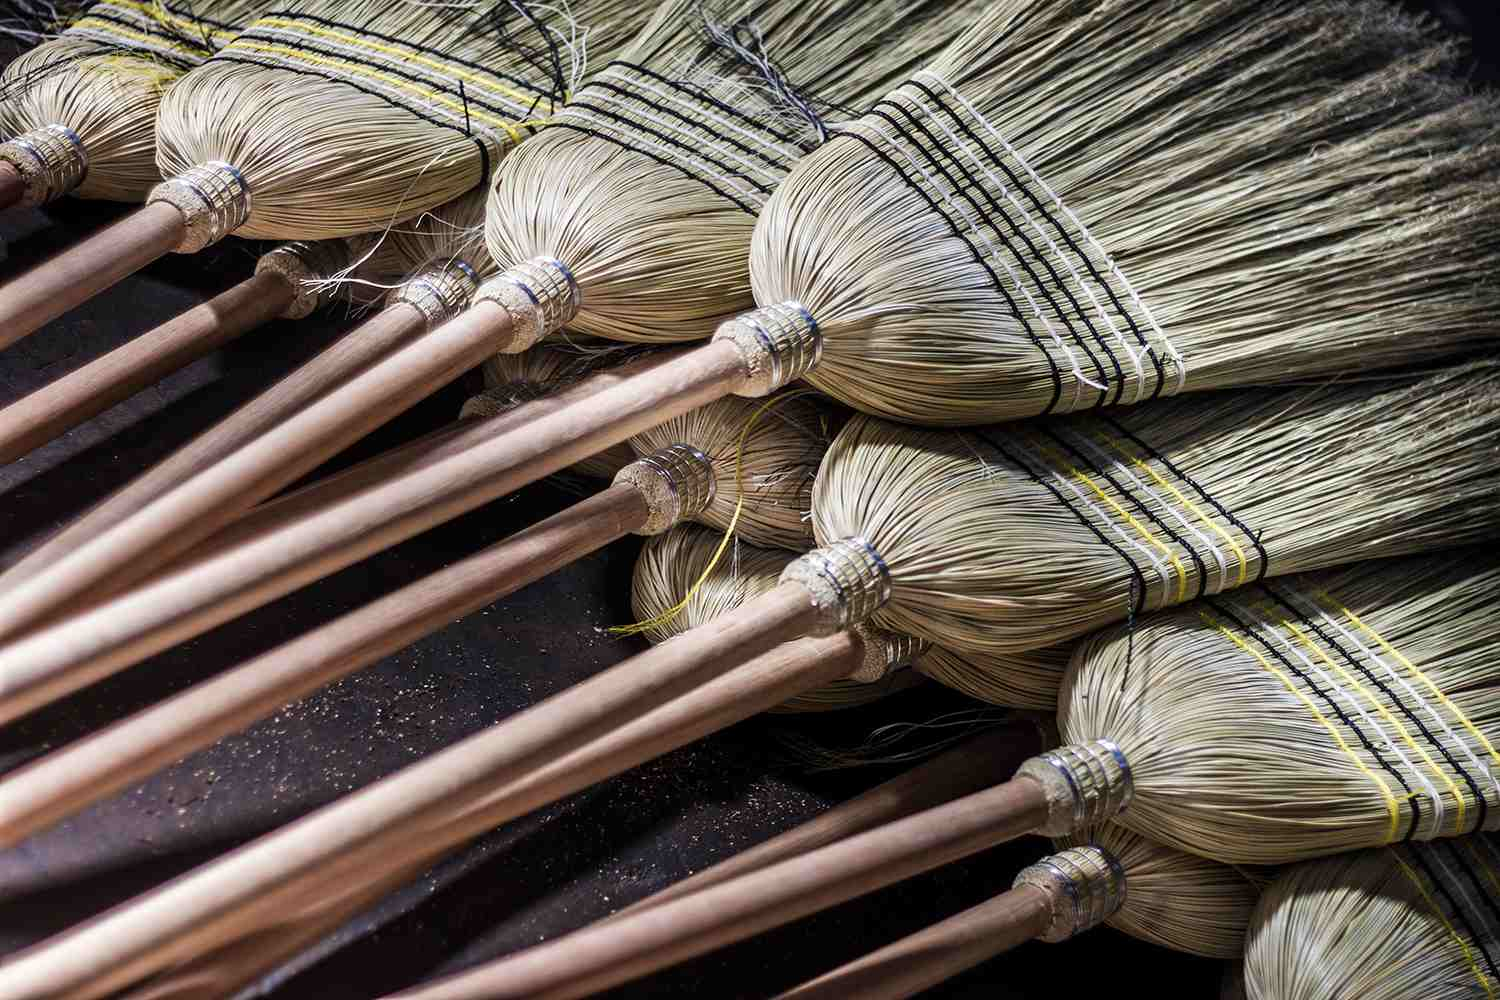 High Angle View Of Brooms For Sale In Market